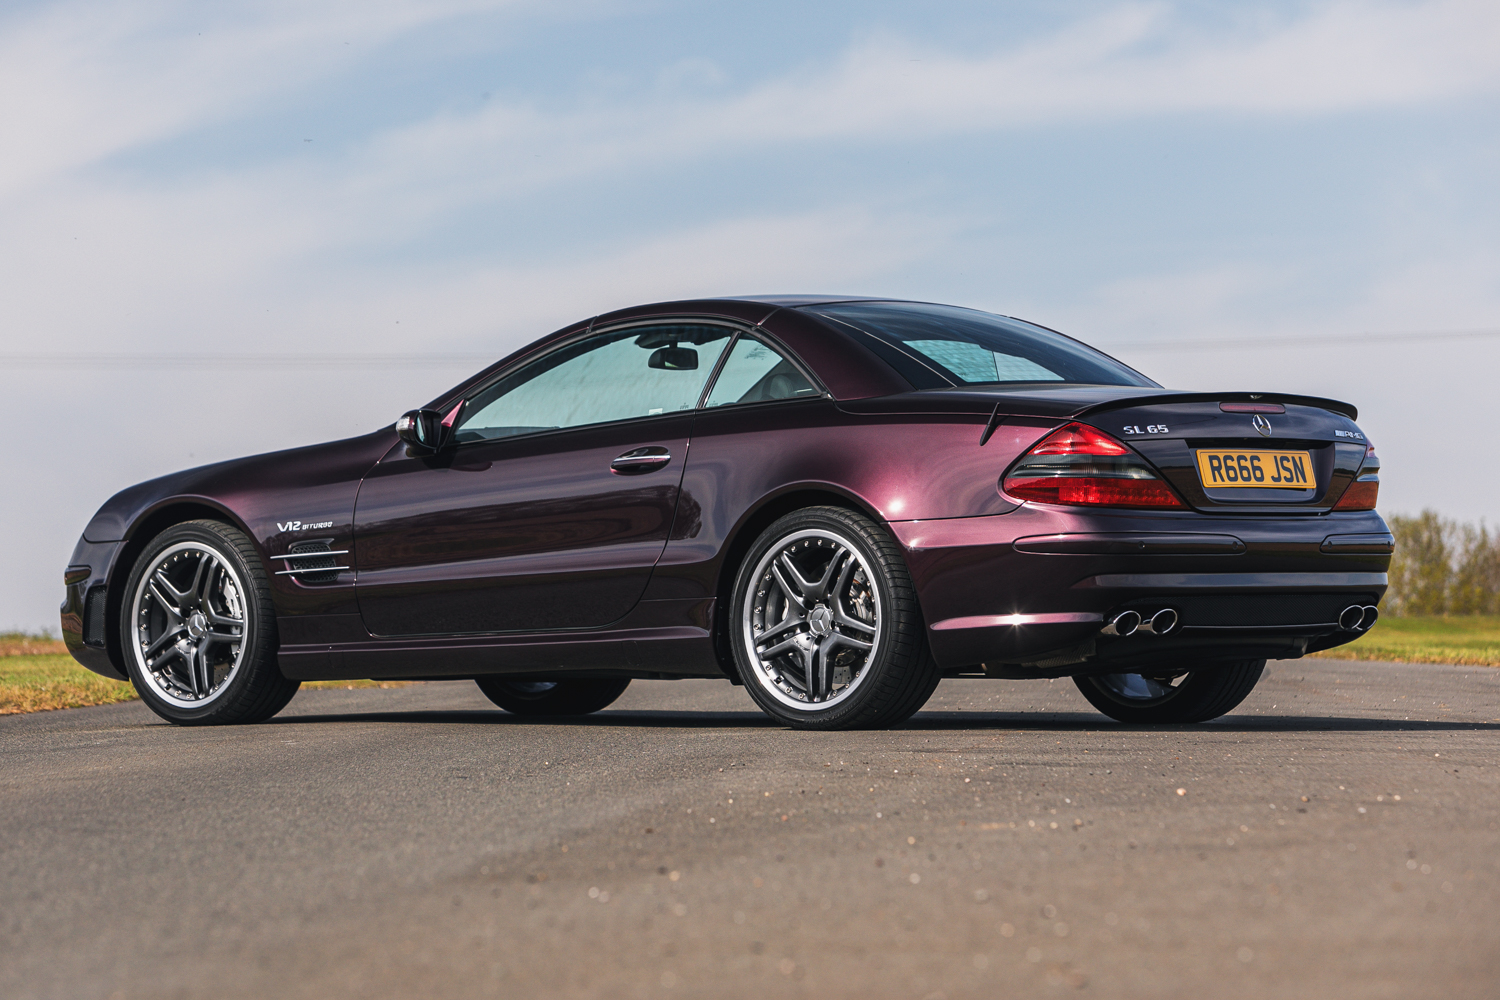 Lot 123 - 2004 Mercedes-Benz SL65 AMG (R230)